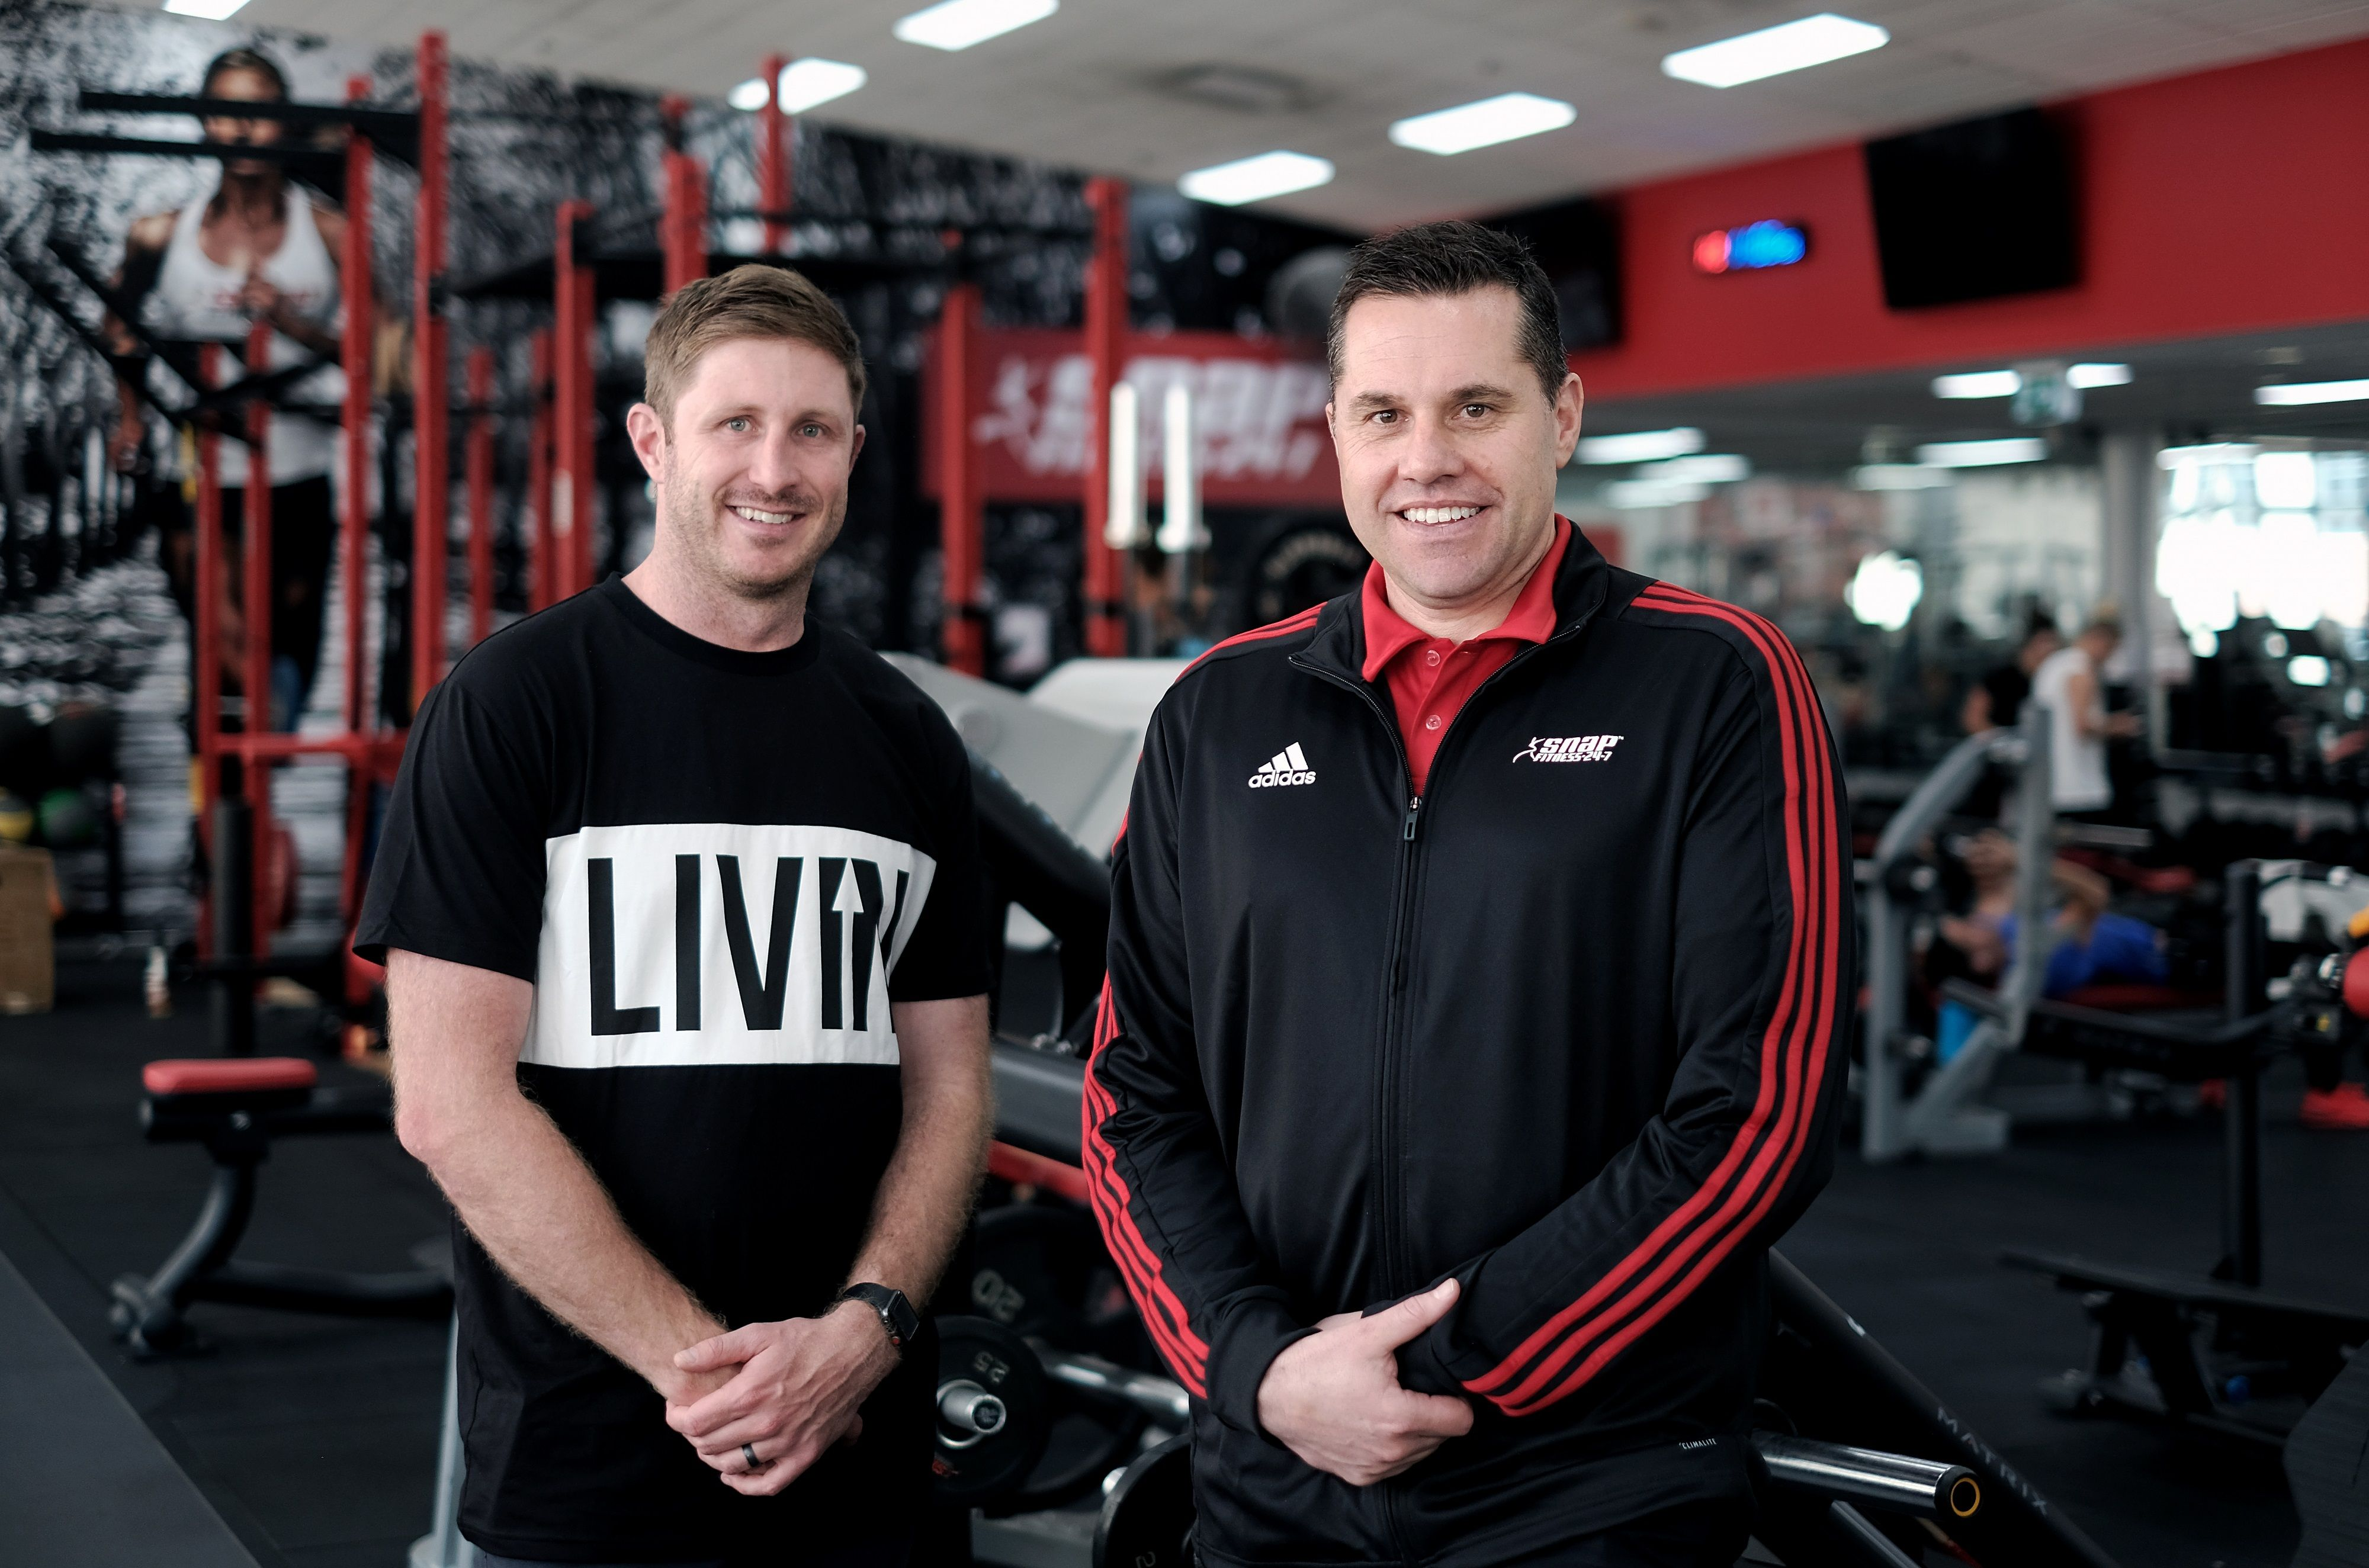 Snap Fitness plans $50,000 fundraiser with LIVIN | Inside Franchise Business